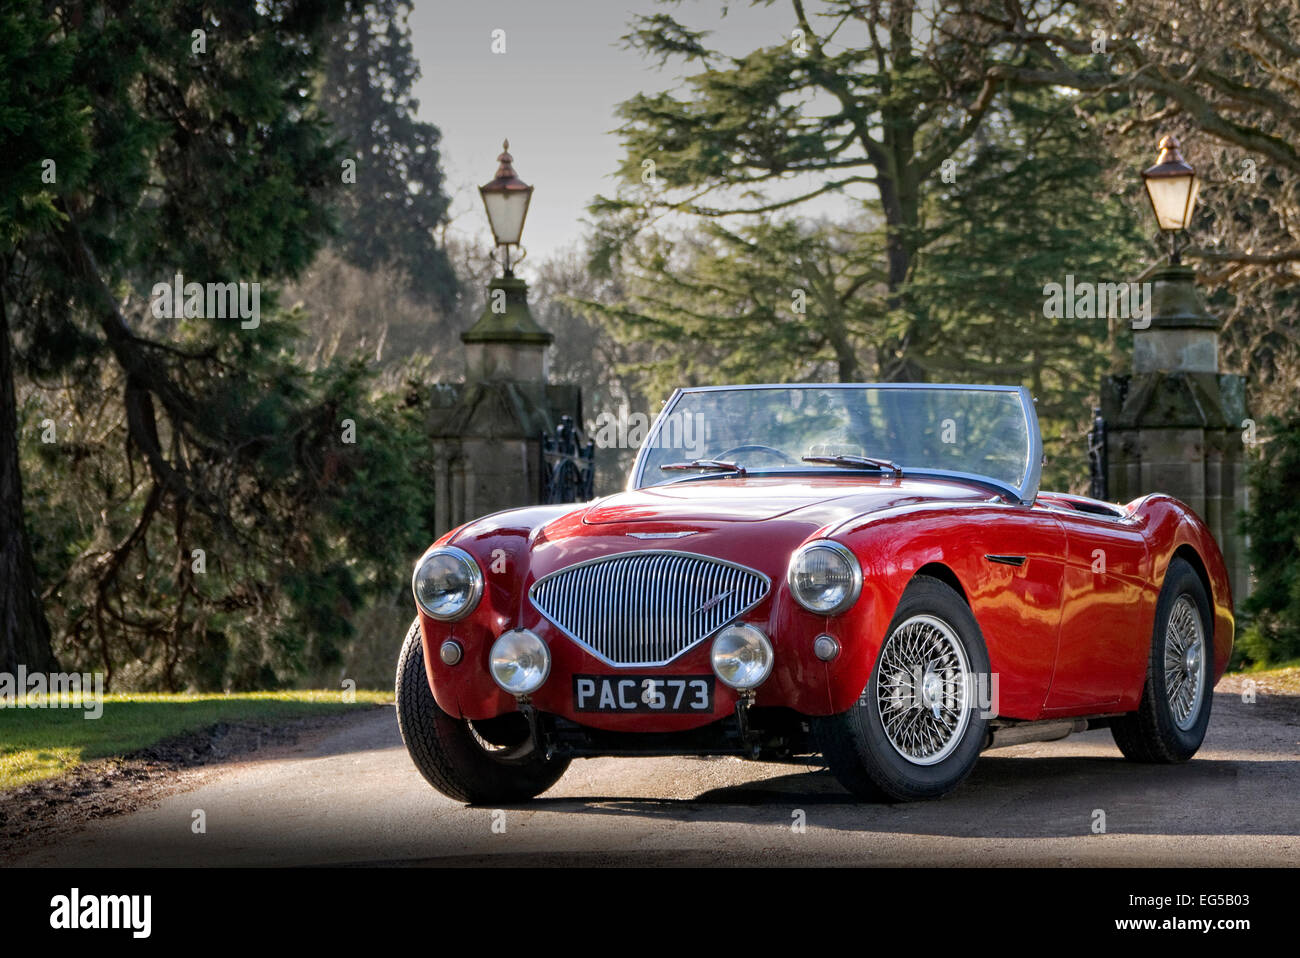 Austin Healey 100M British Sports car from the 1950's - Stock Image